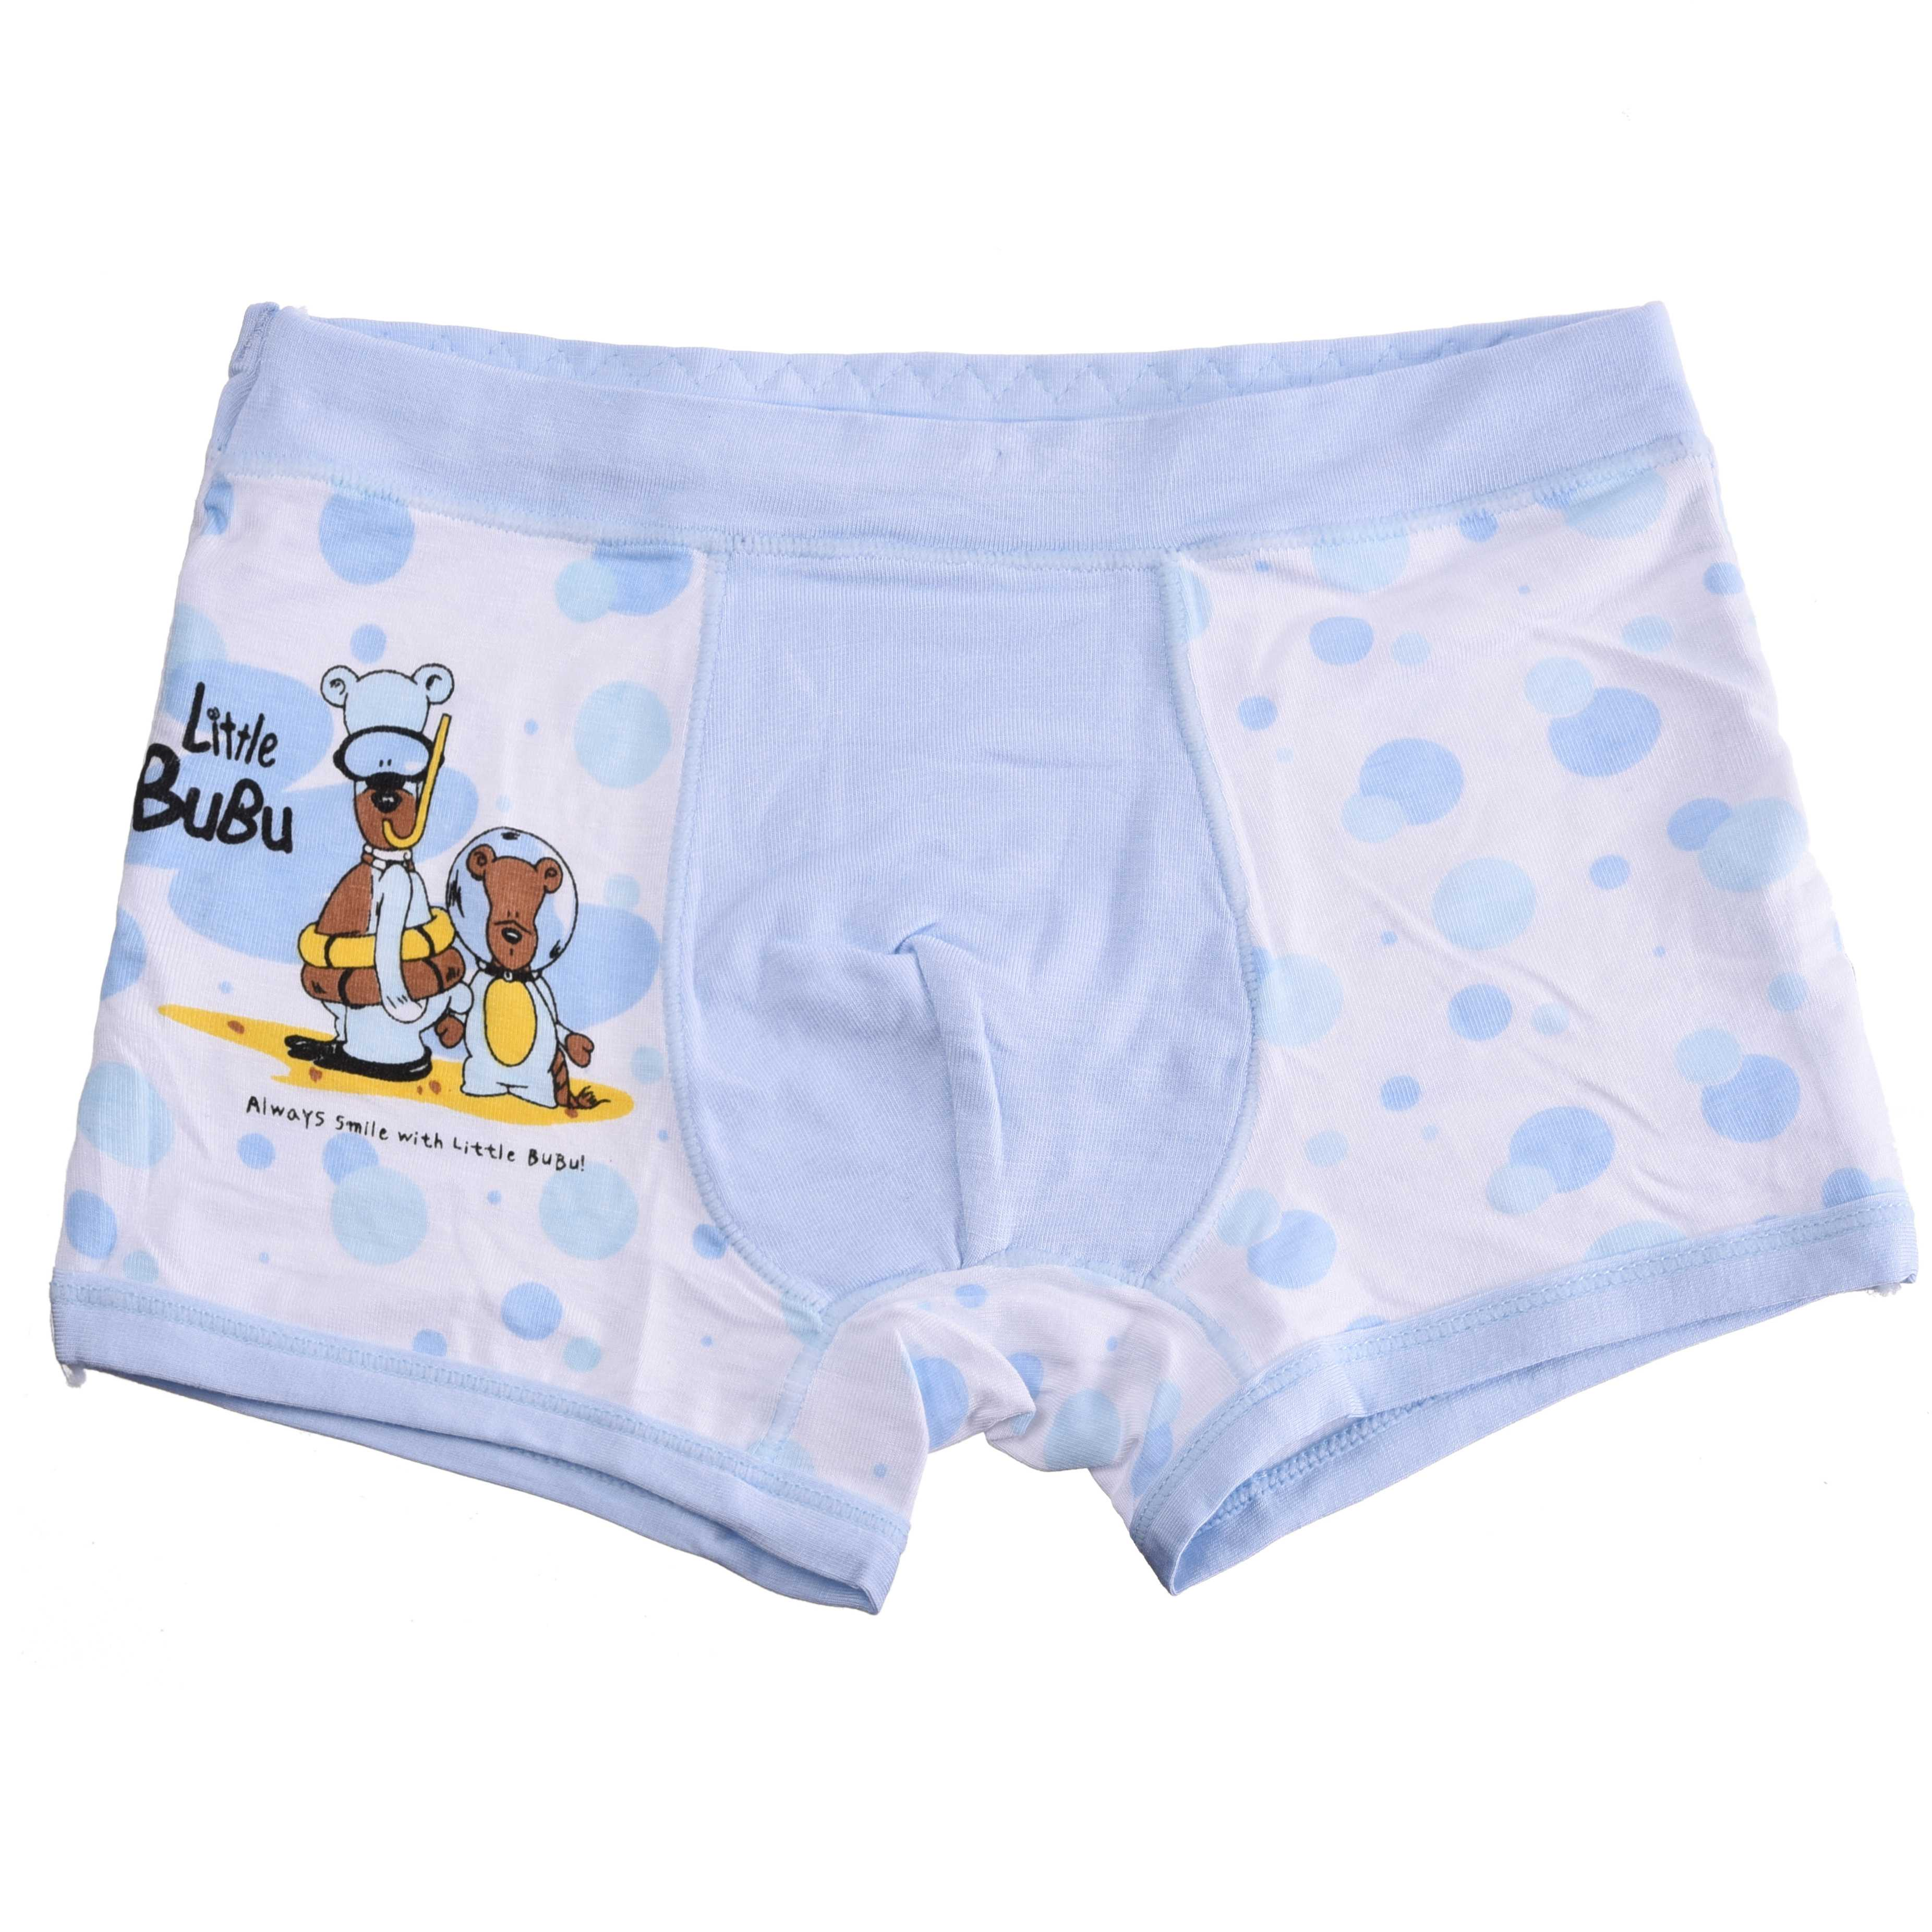 Bamboo Fiber Children Underwear Sports Boys Shorts Panties Kids